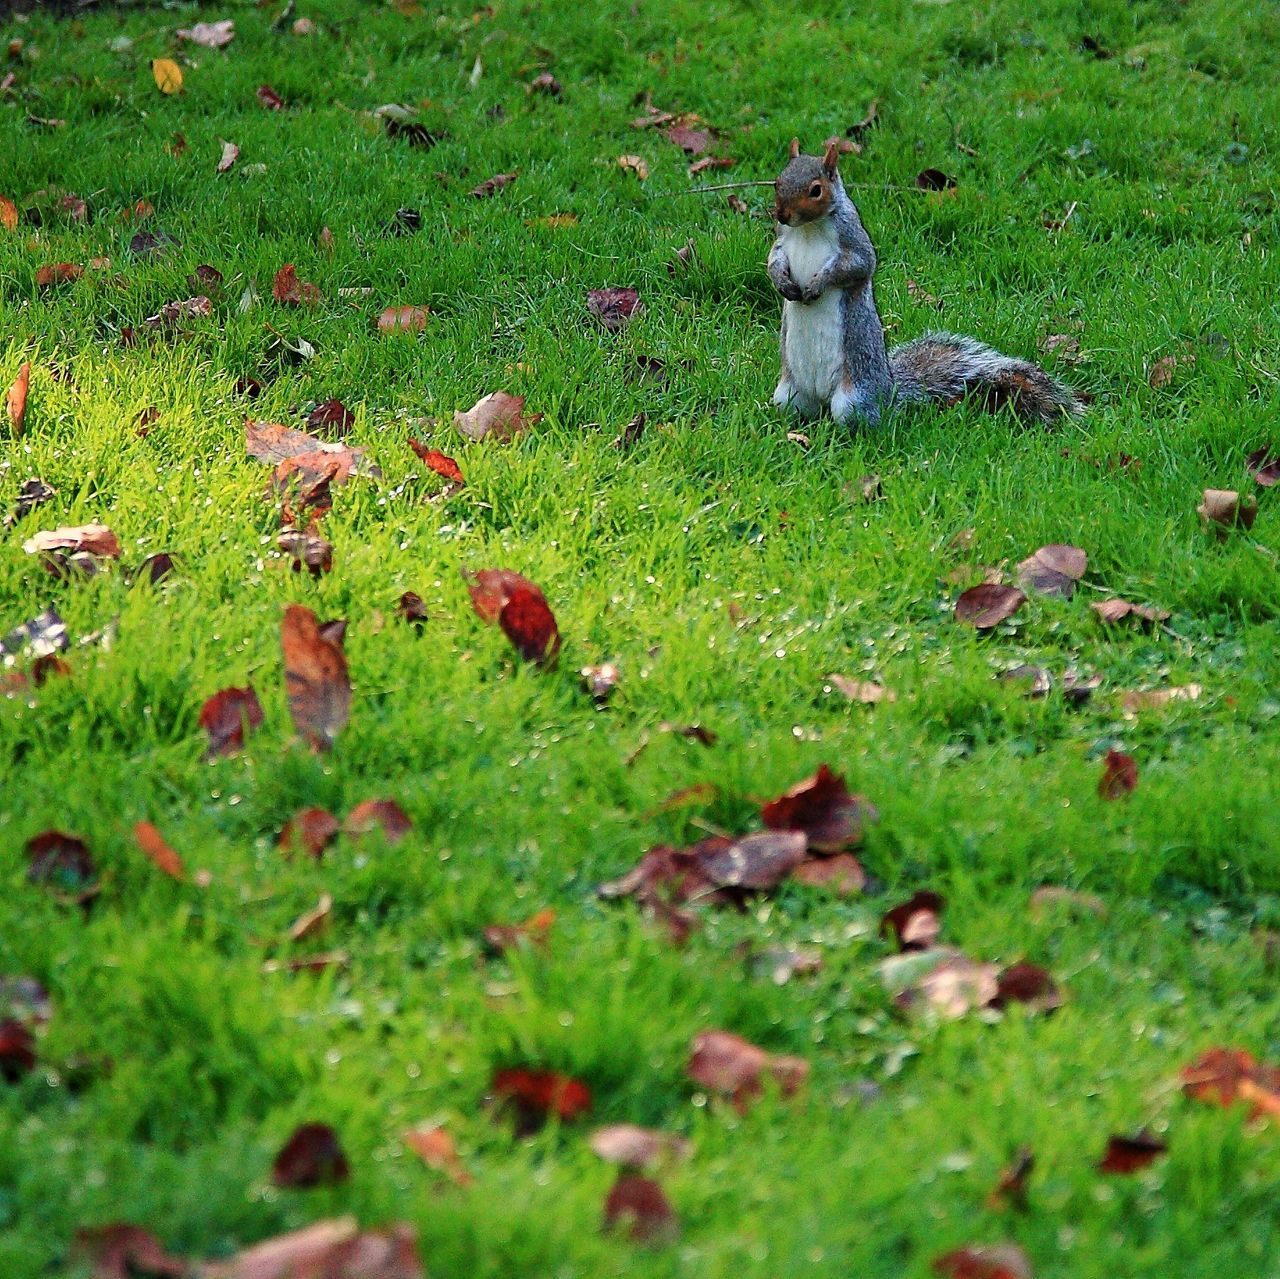 grass, animal themes, one animal, green color, nature, field, mammal, outdoors, animals in the wild, day, no people, animal wildlife, squirrel